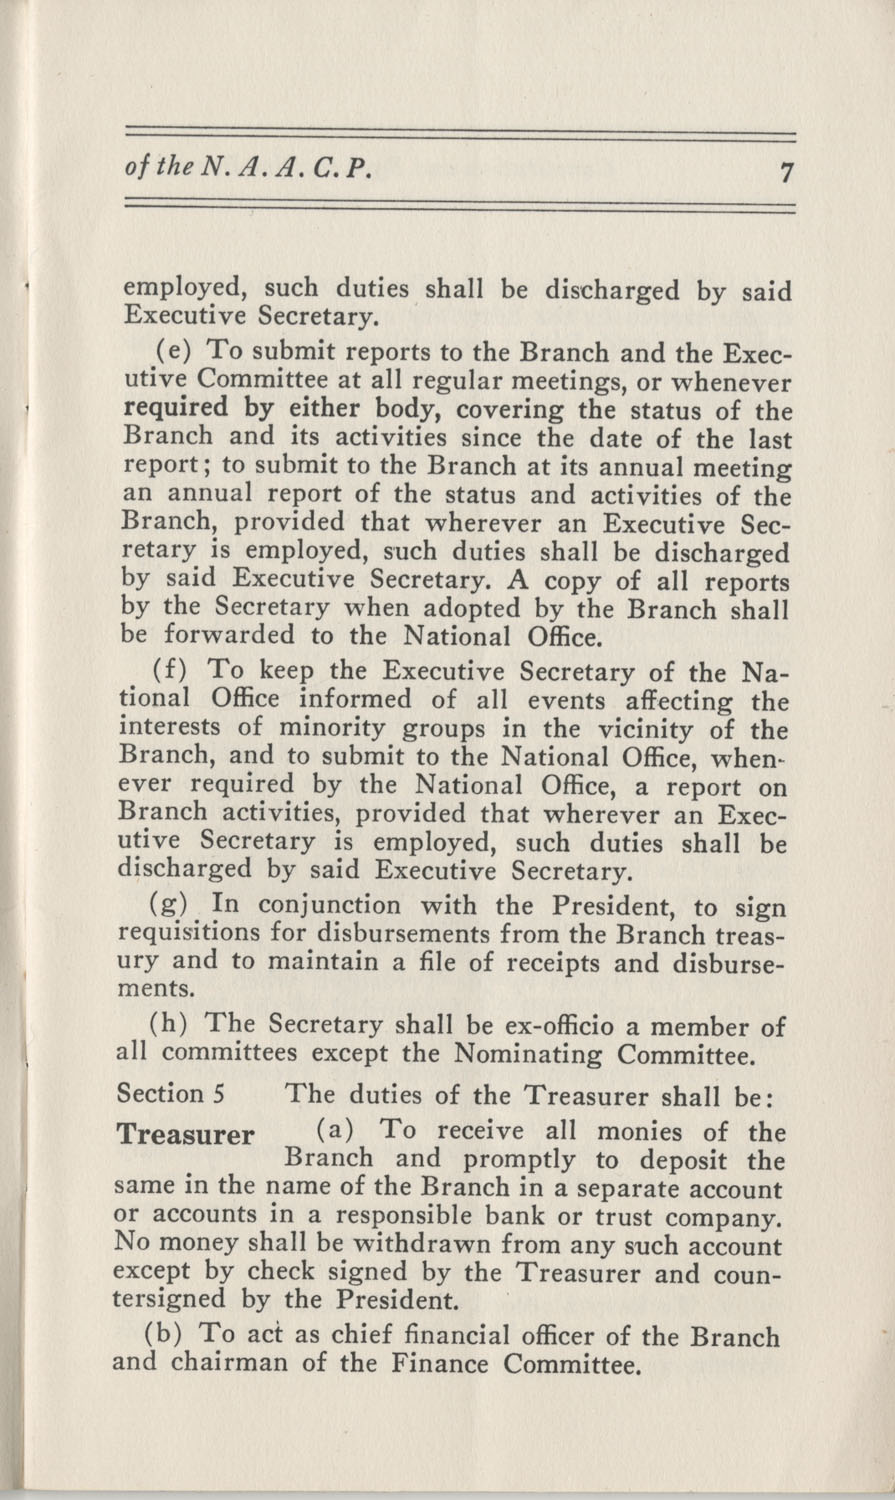 Constitutions and By-Laws, September 1960, Page 7